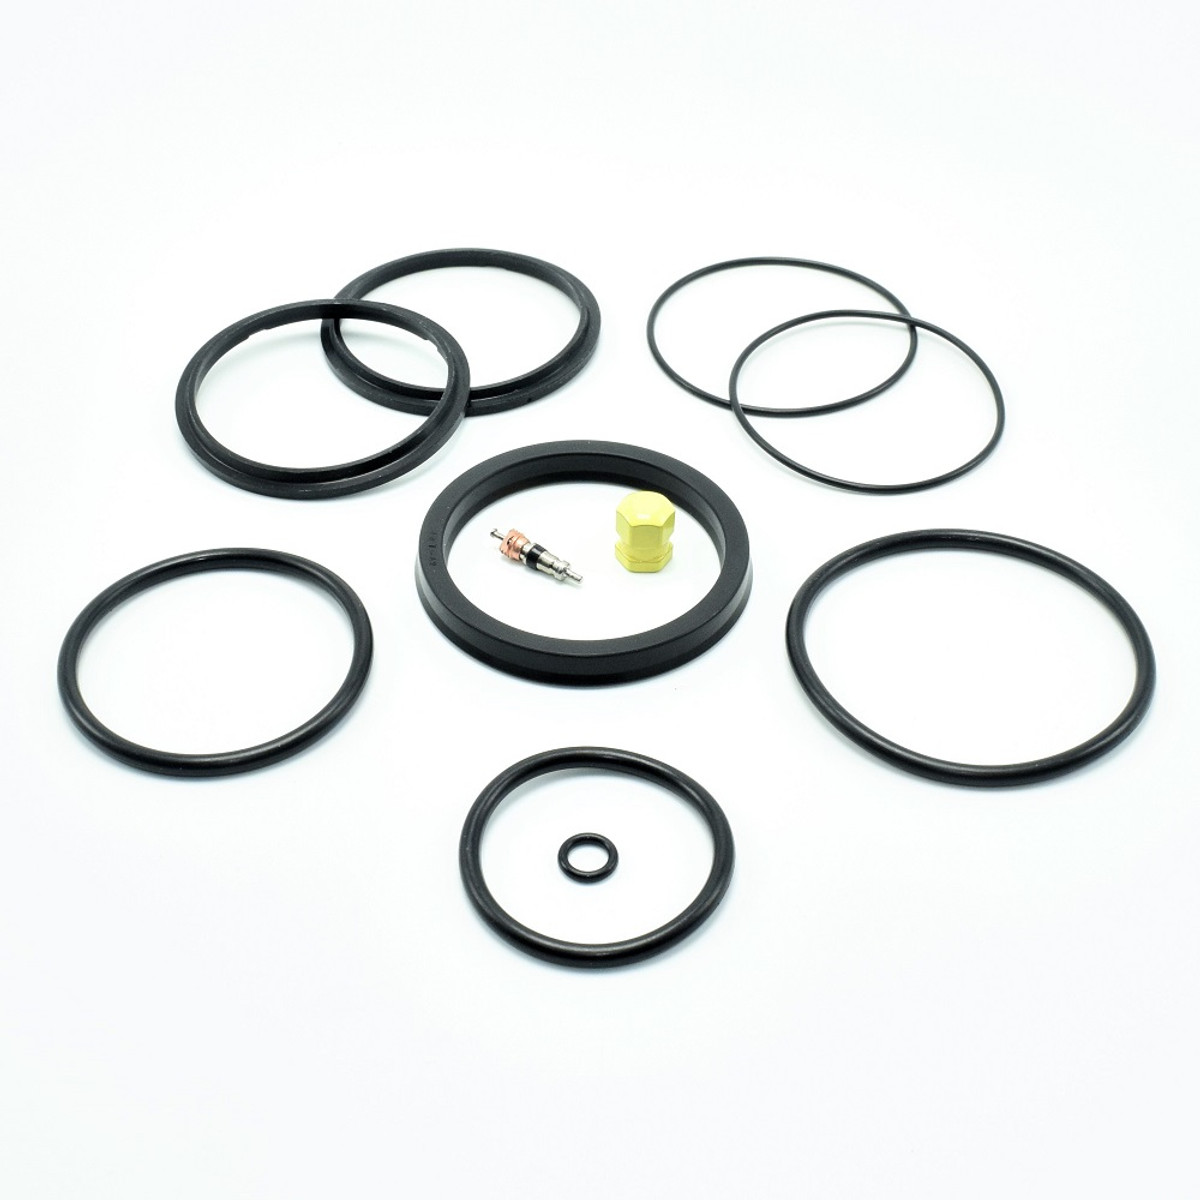 Strut Seal Kit  for Nose Gear, Cessna 400 Series. 104-PP400NSSK